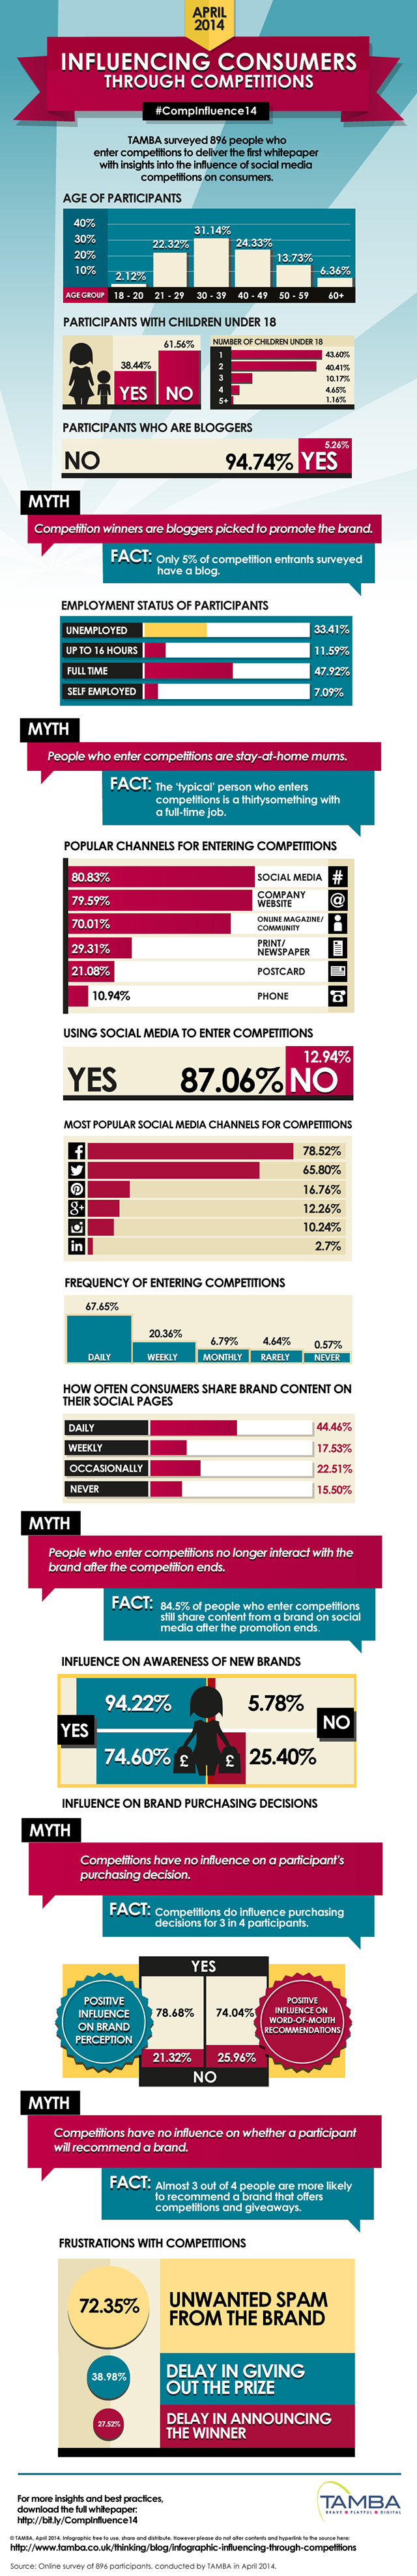 infographic-influencing-through-competitions.jpg